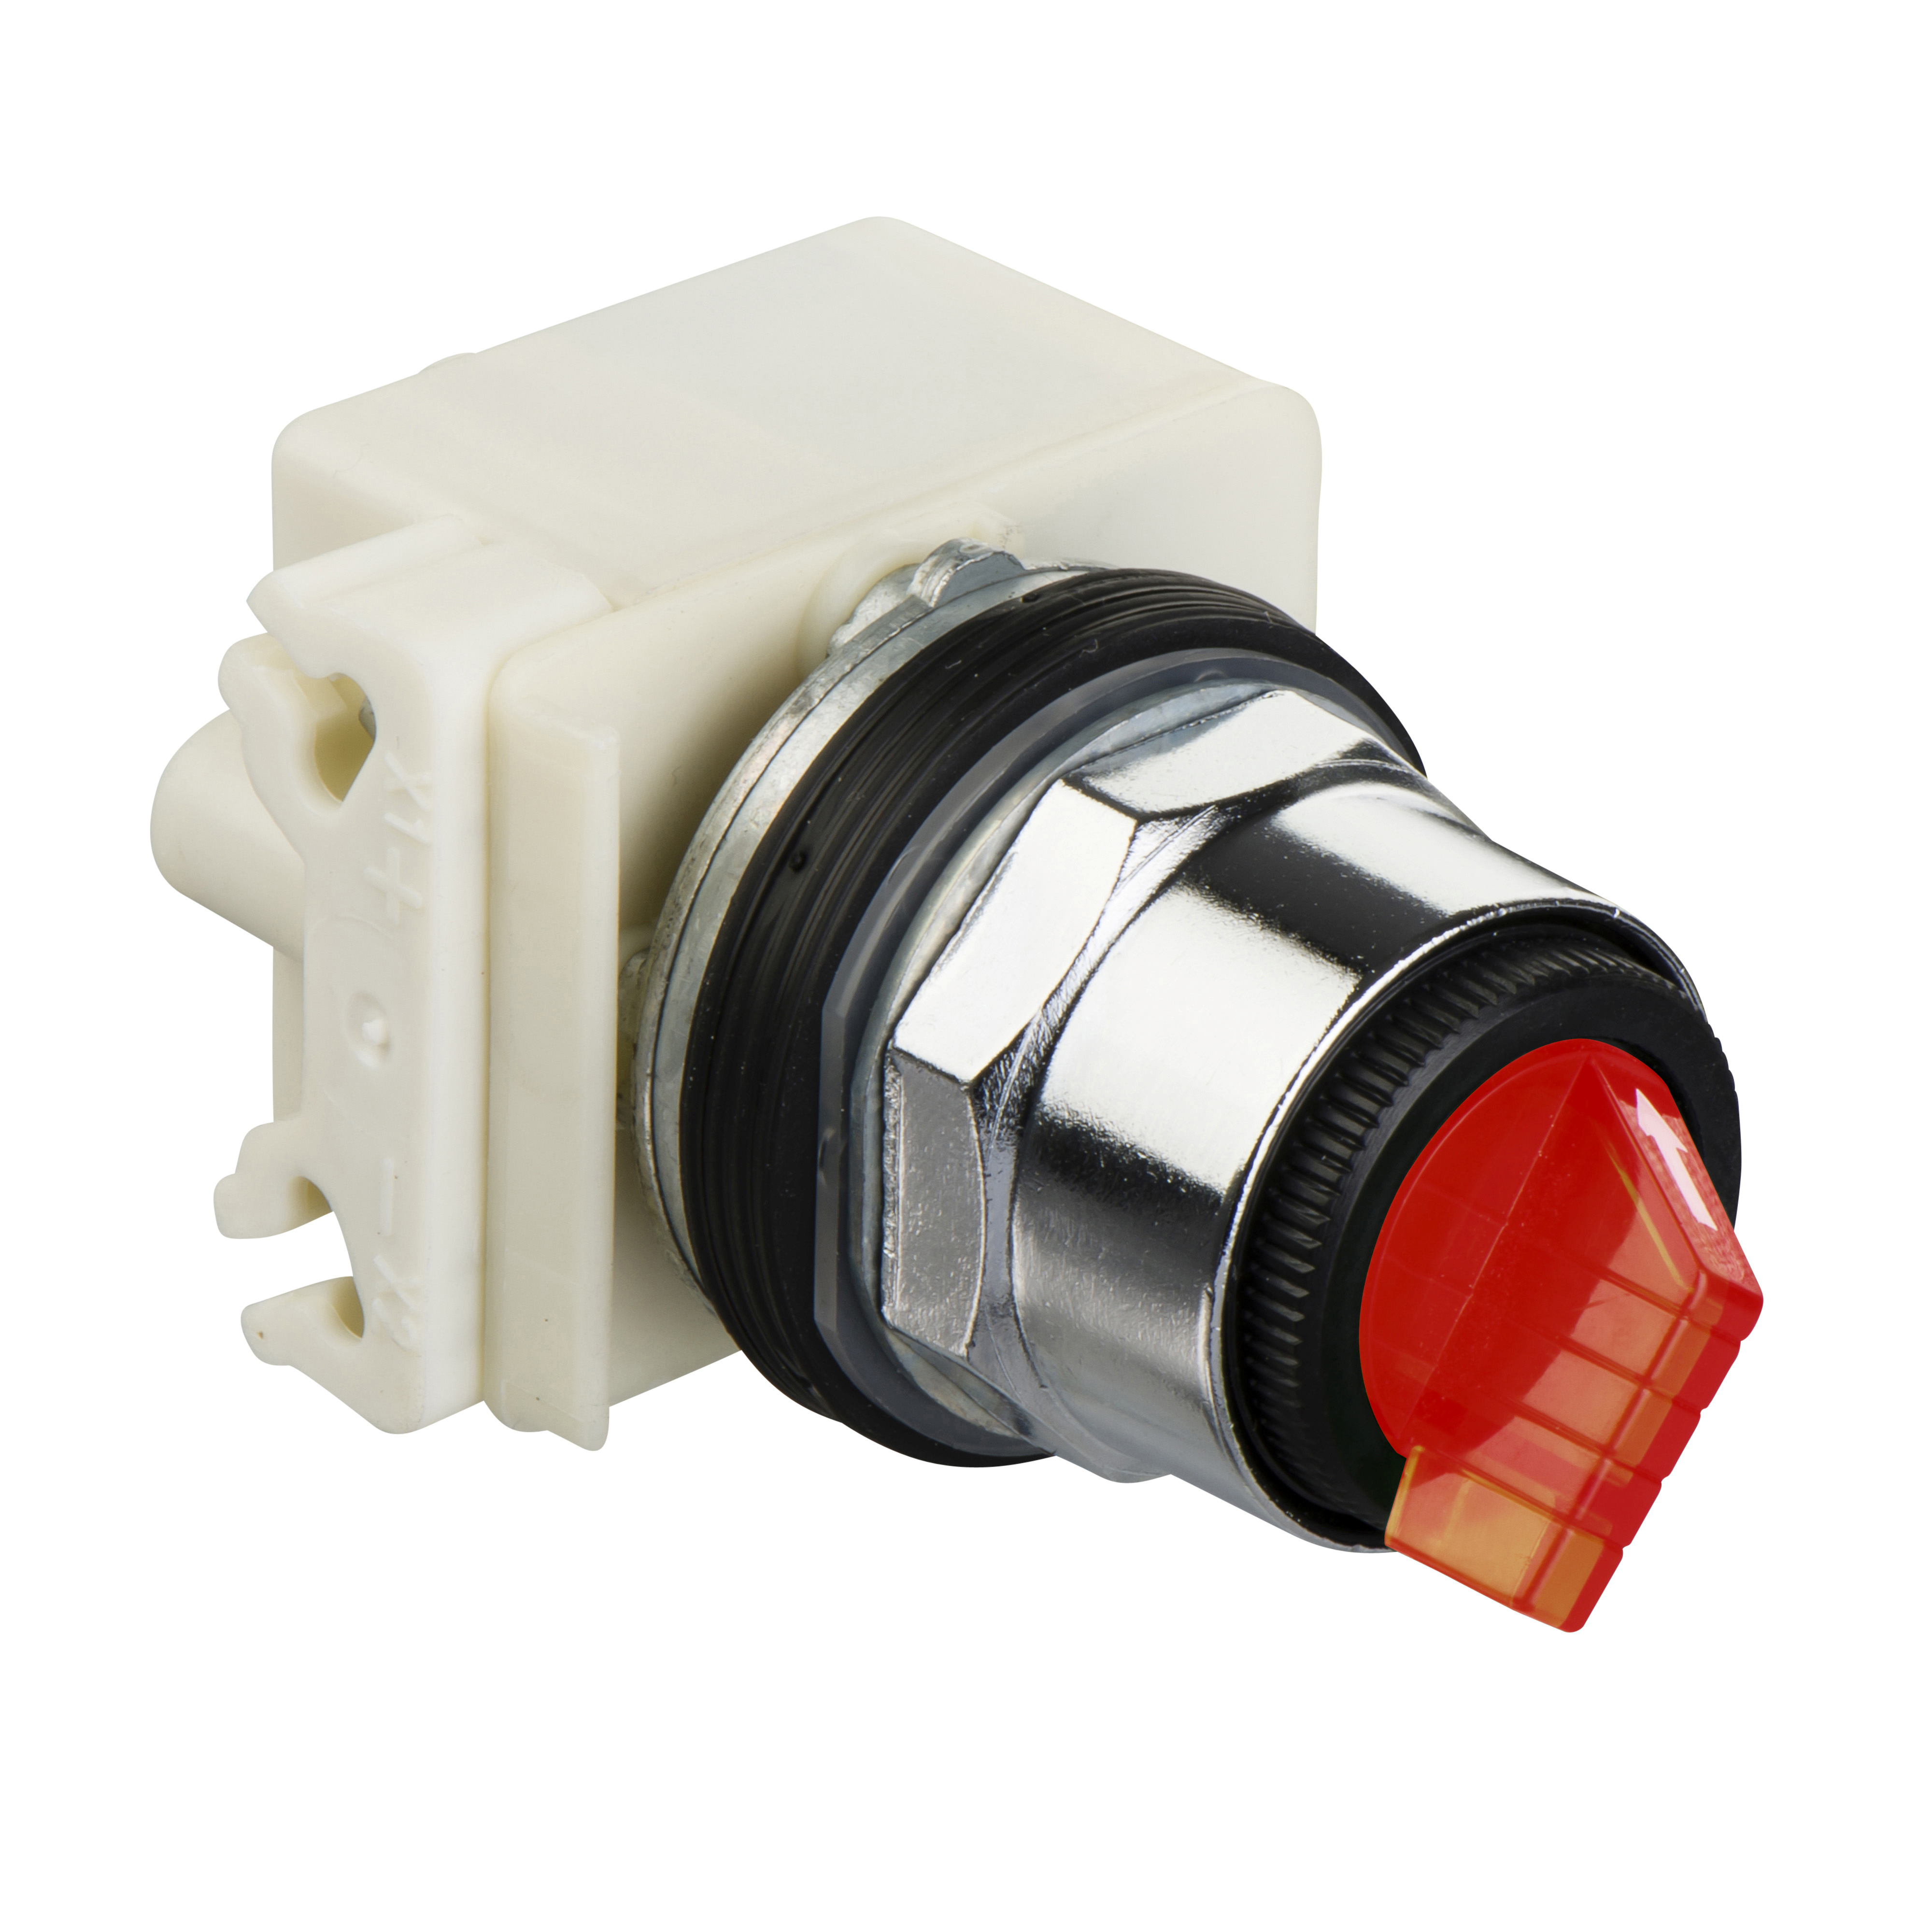 SQUARE D Selector switch Ø 30 - 3 positions - spring return - incandescent